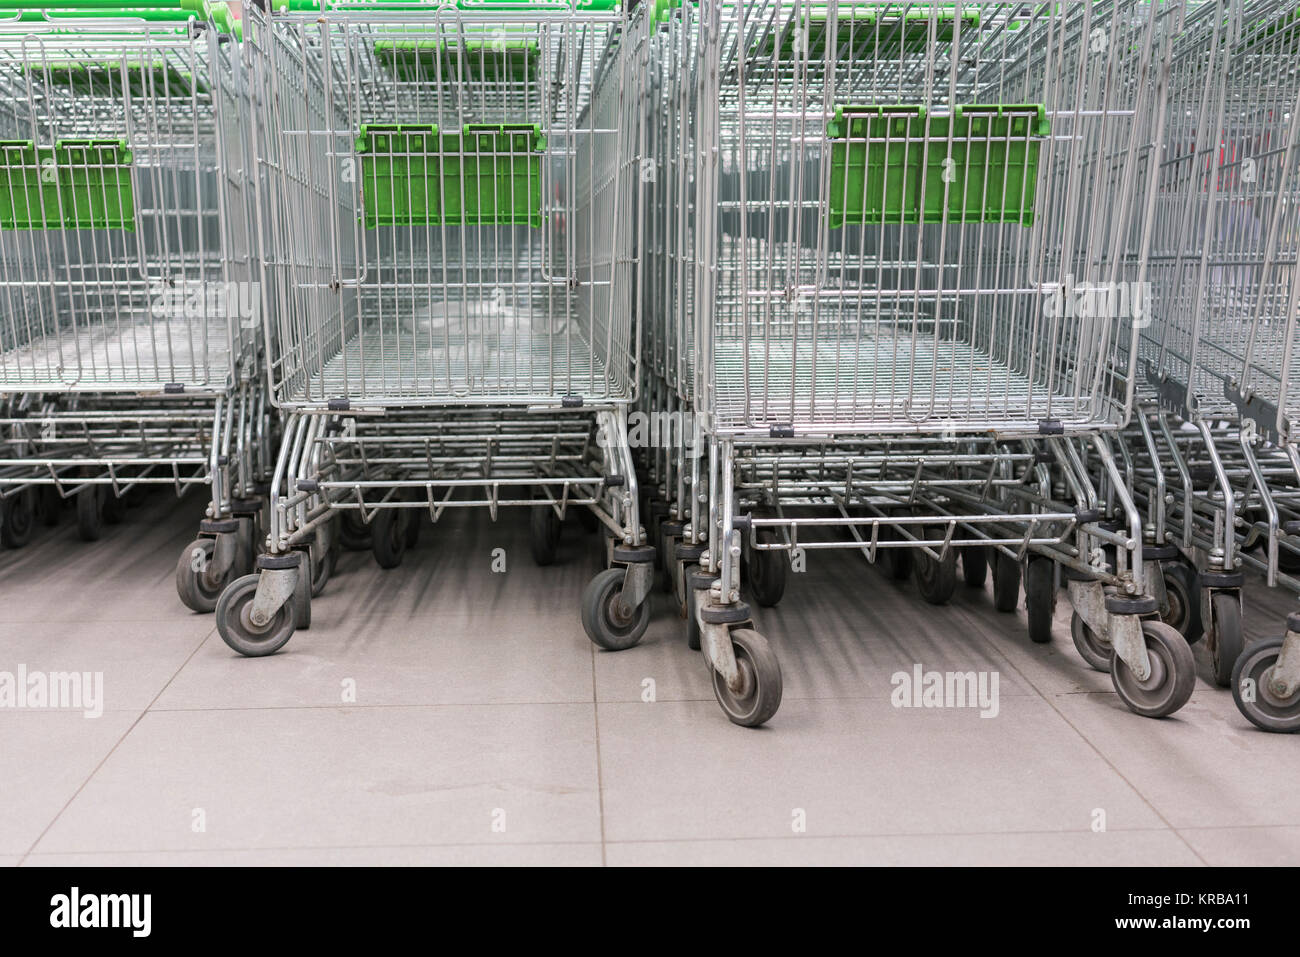 Shopping carts in a supermarket, detail of metal carts in a supermarket, - Stock Image